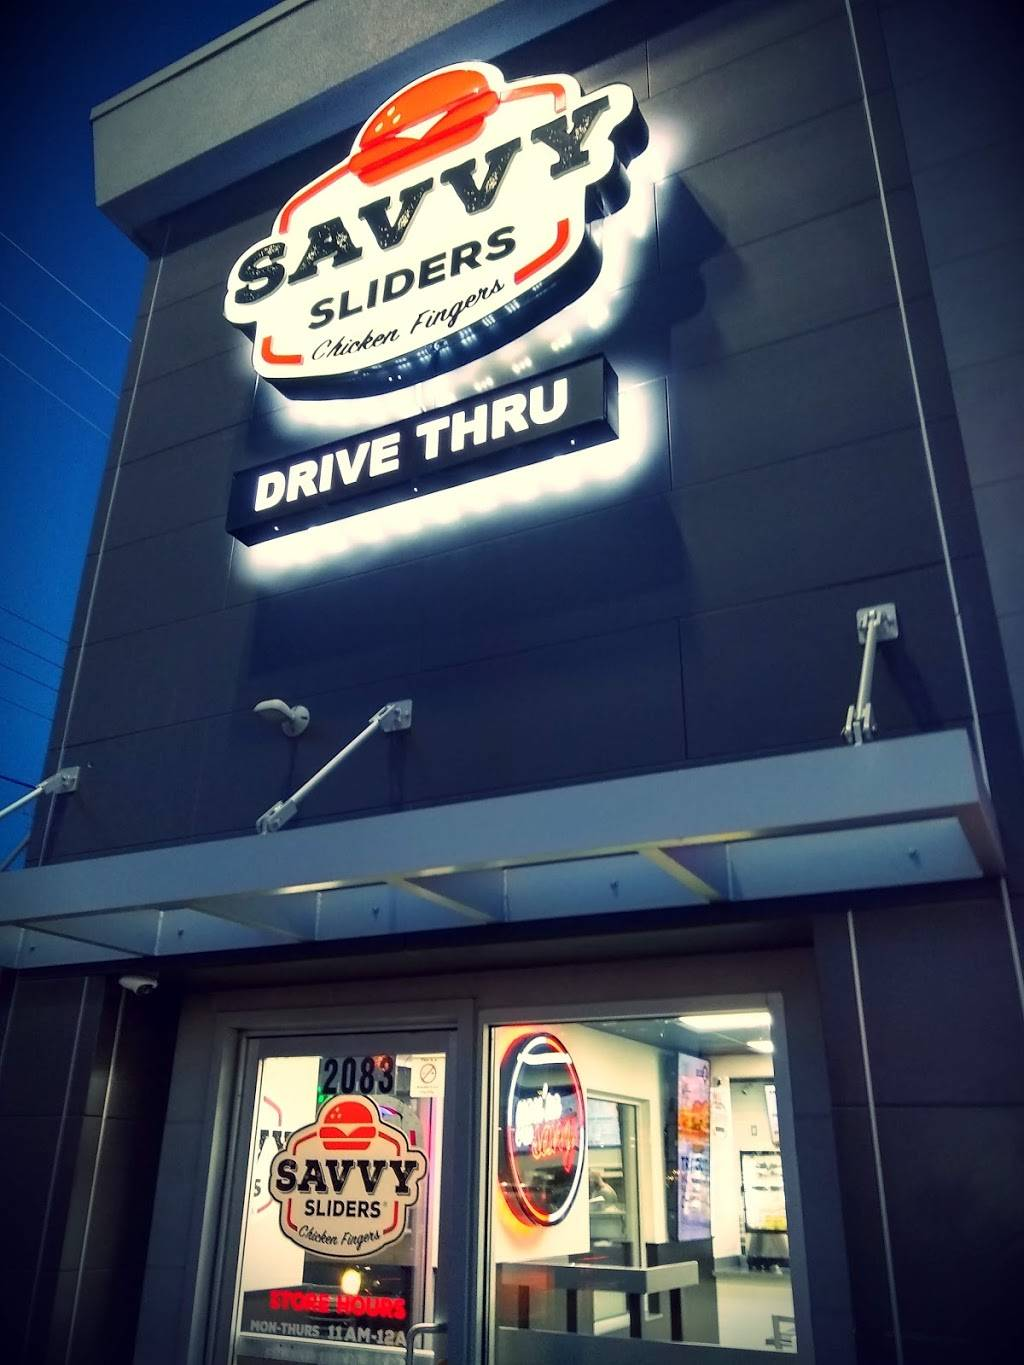 Savvy Sliders | meal takeaway | 2083 Dix Hwy, Lincoln Park, MI 48146, USA | 3133060000 OR +1 313-306-0000